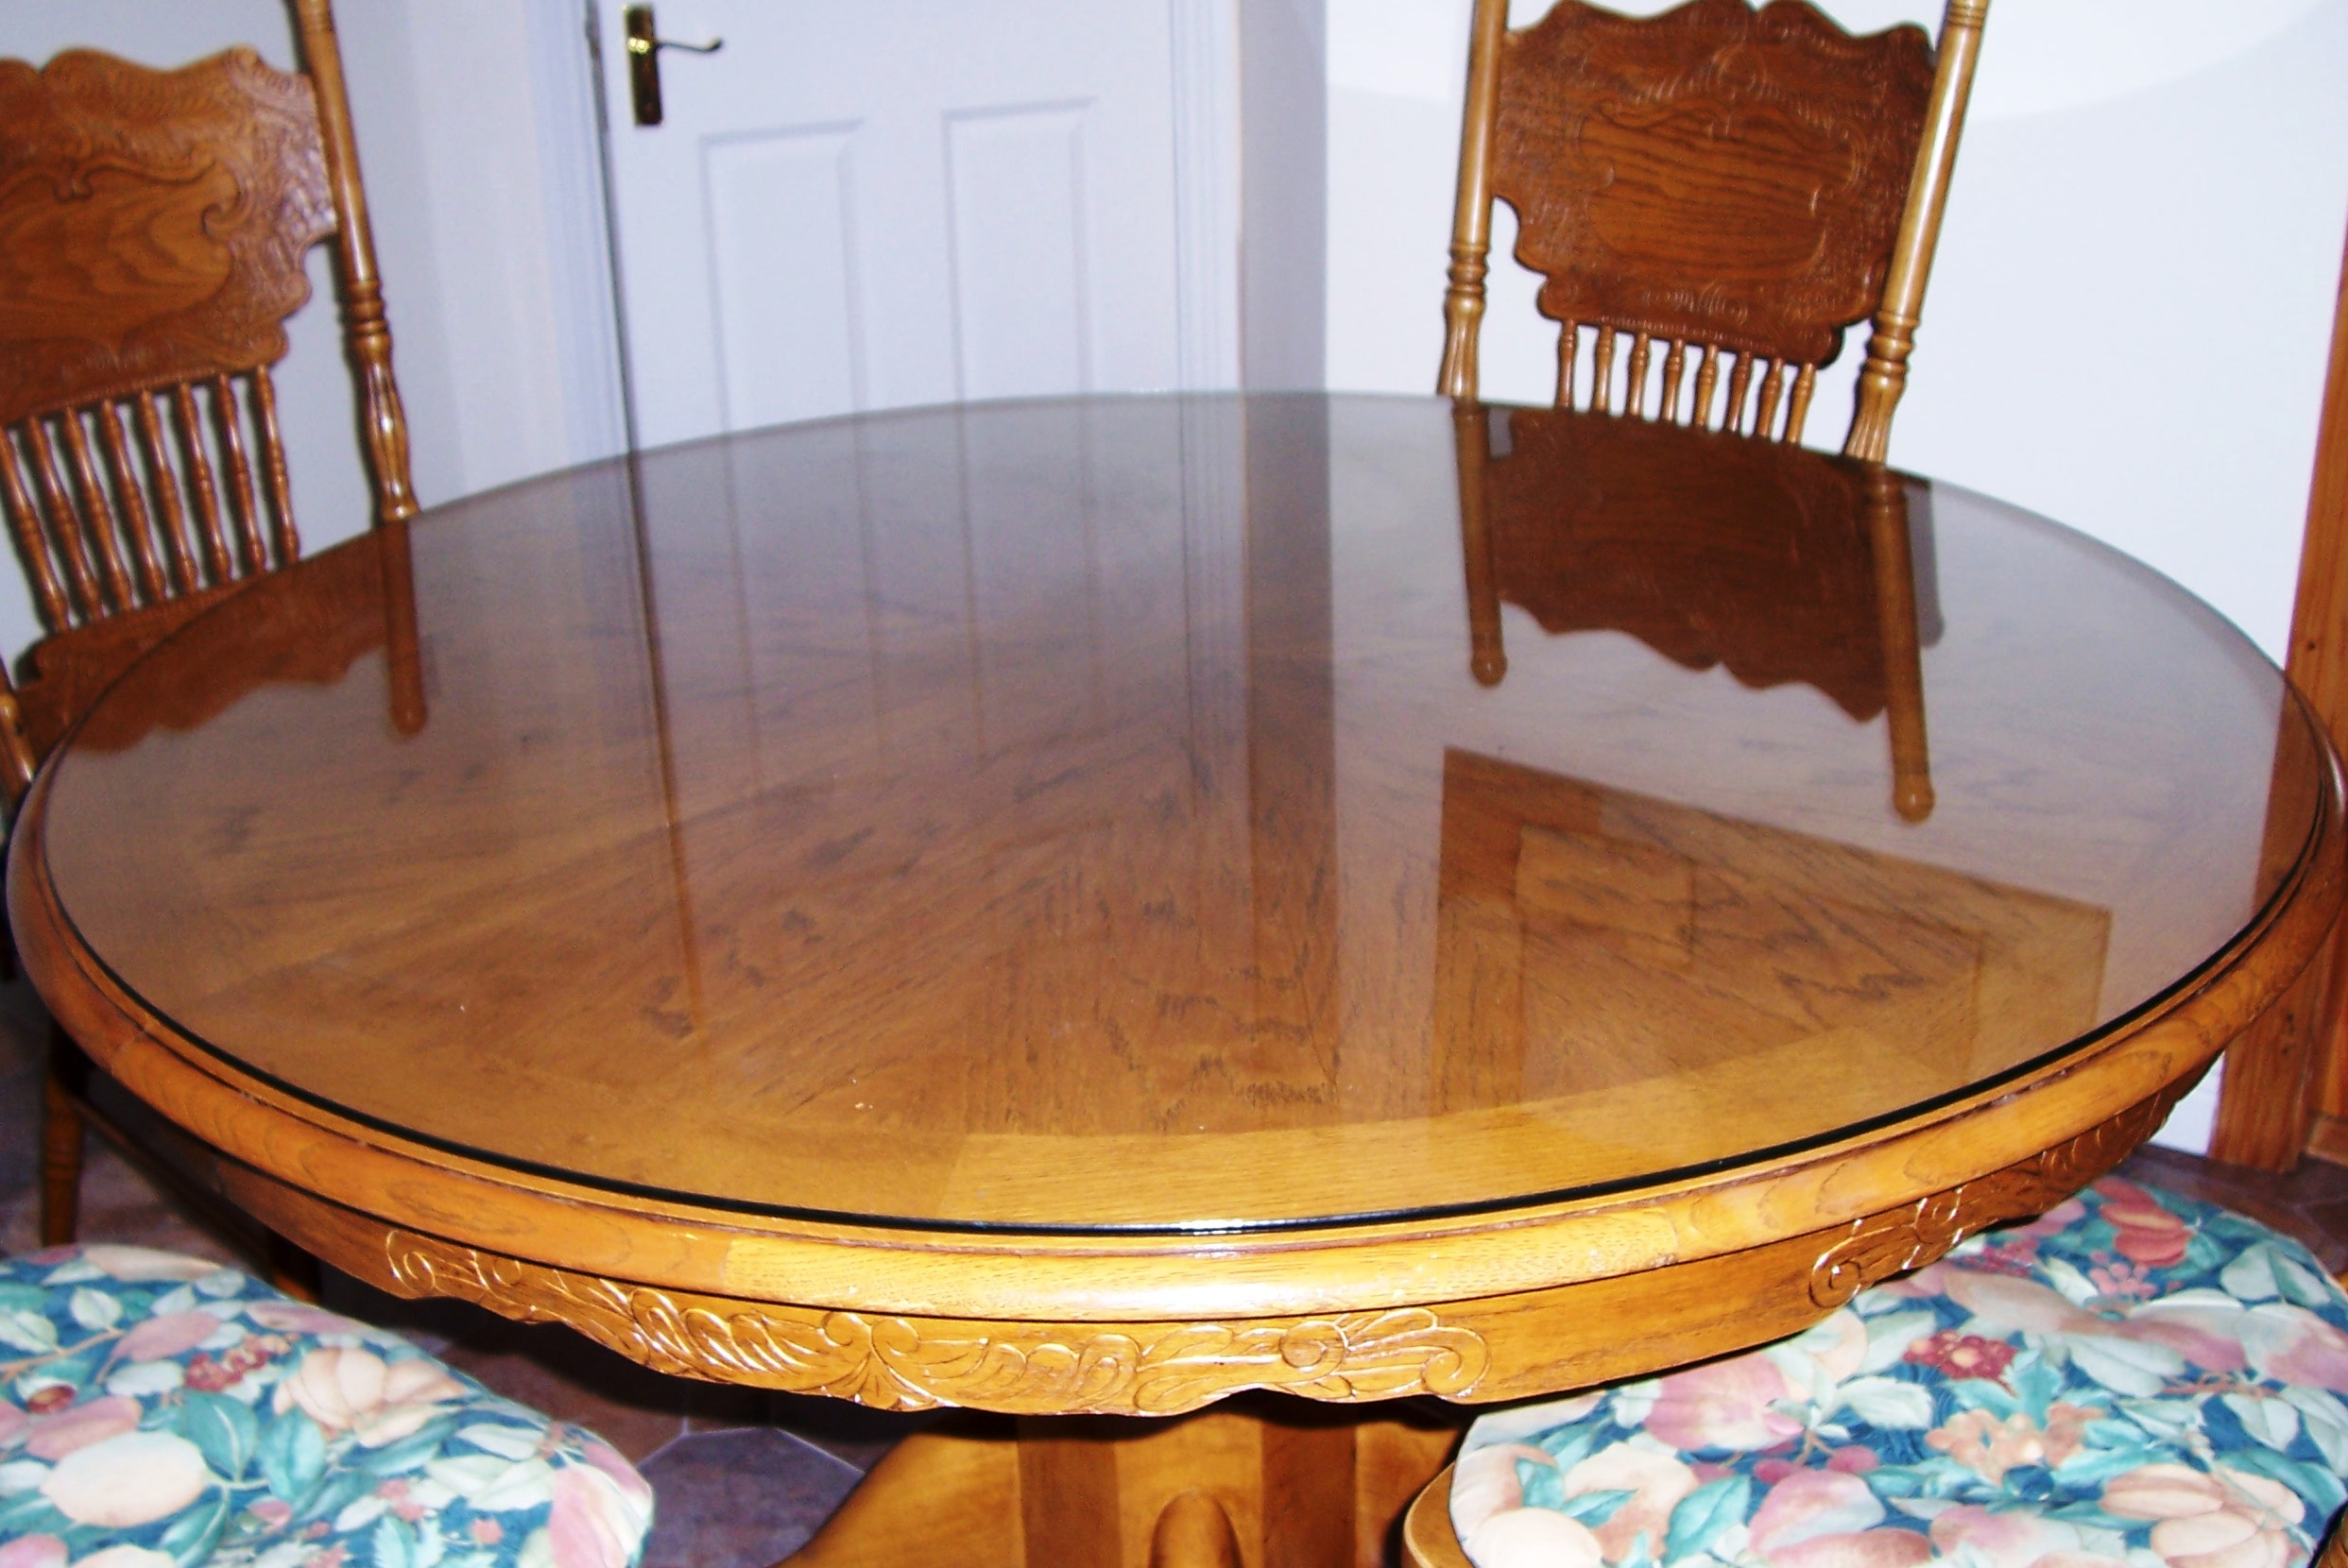 Round glass table top cut to size